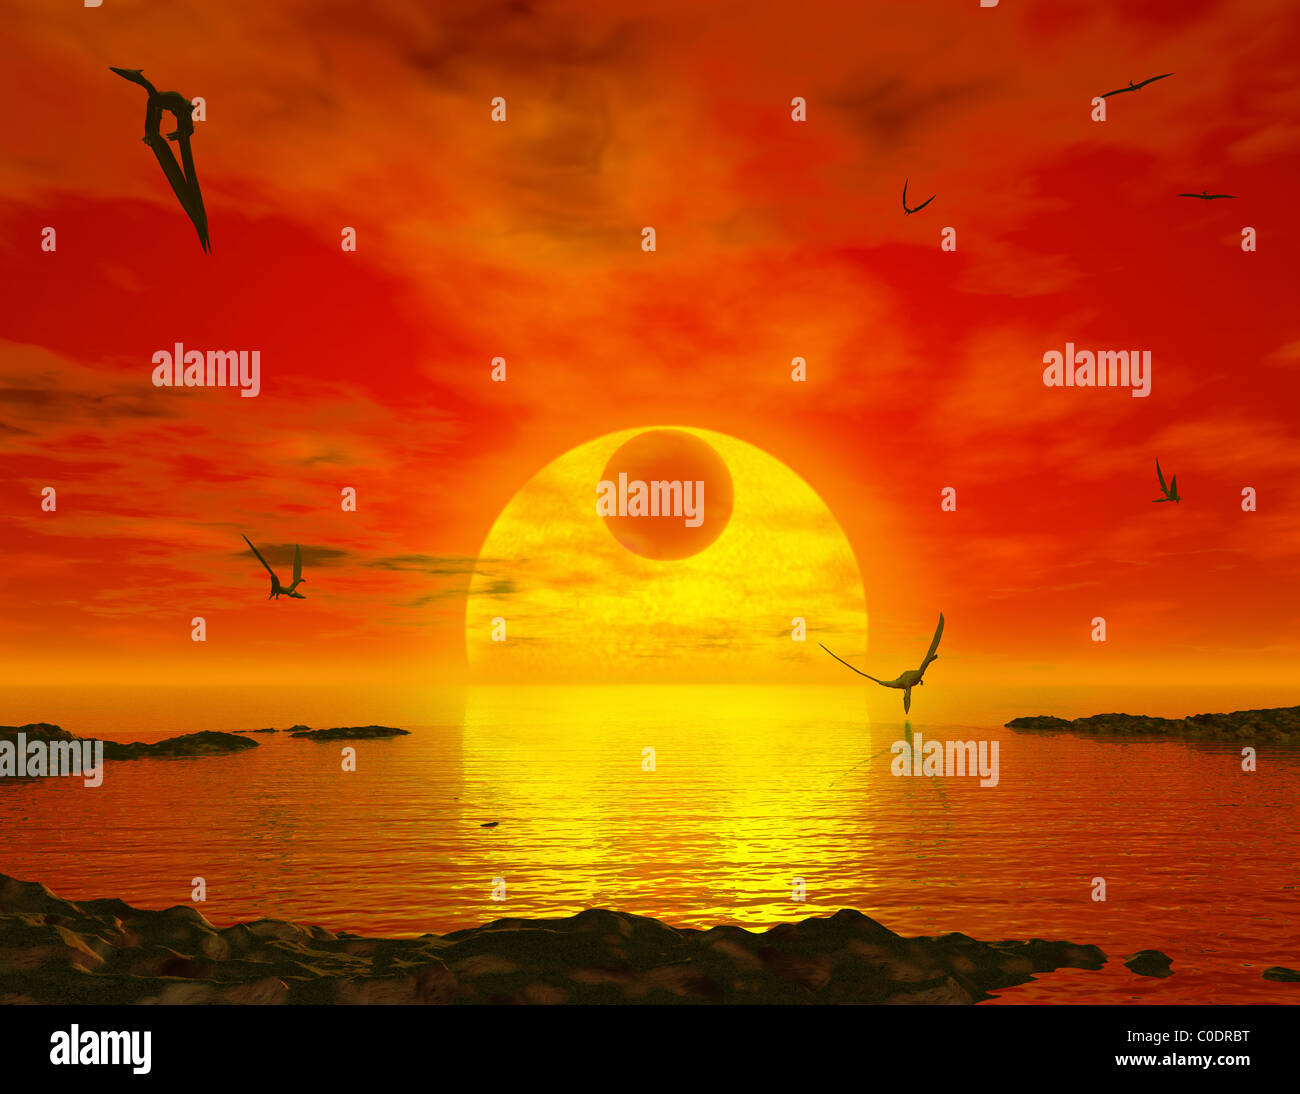 Flying life forms grace the crimson skies of the earth-like extrasolar planet Gliese 581 c. Stock Photo